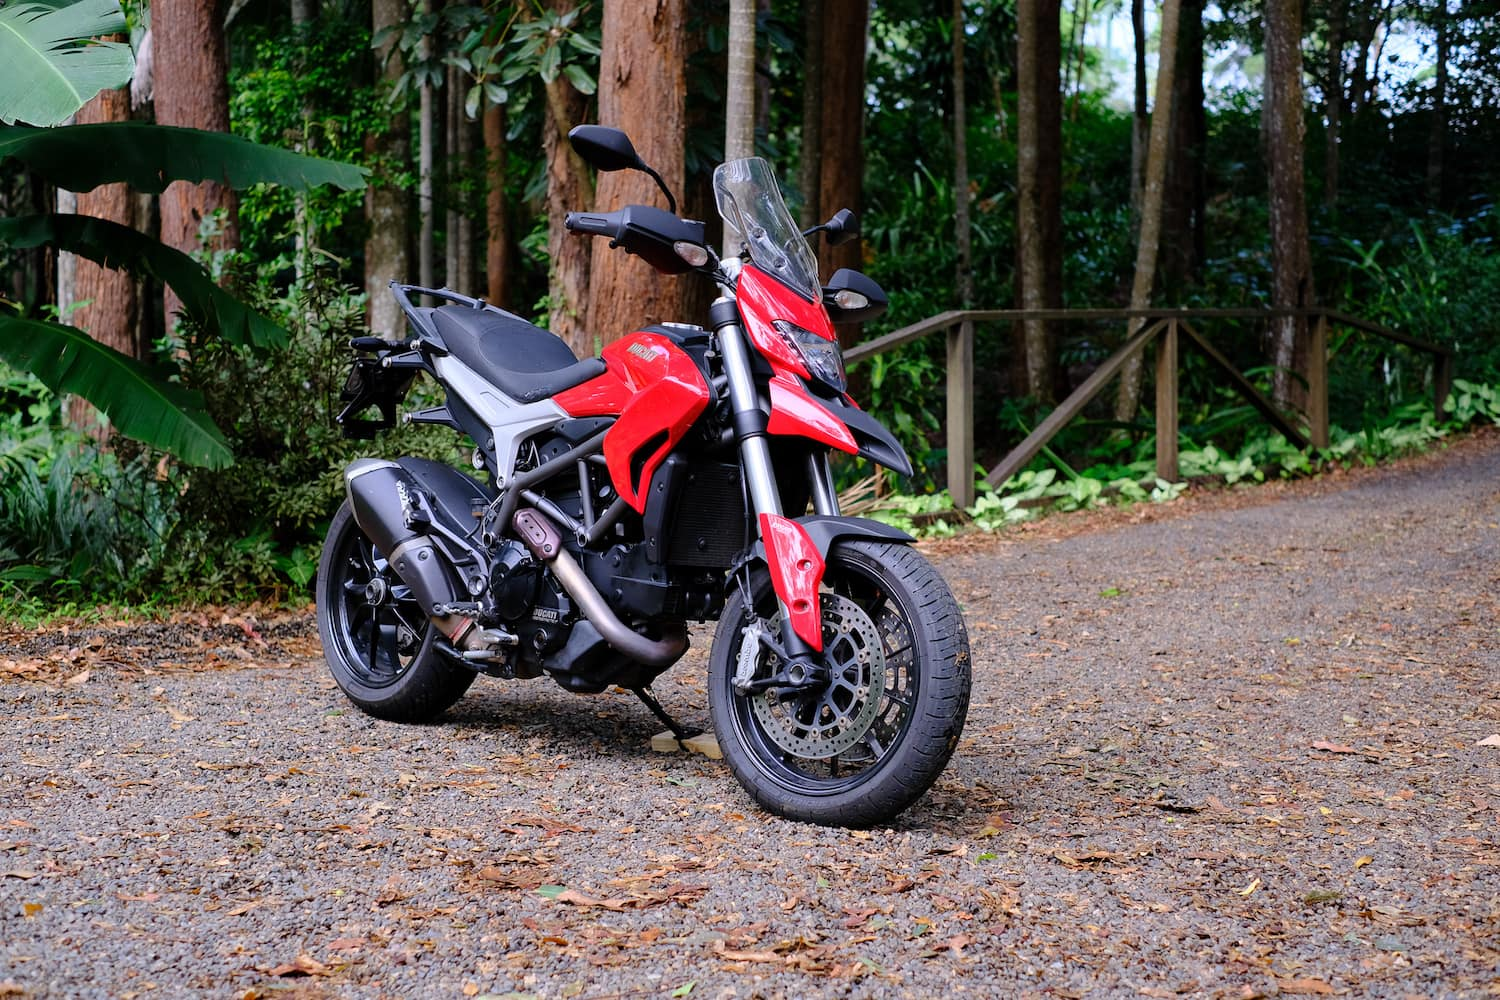 Ducati Hyperstrada 821 red - side view on dirt road